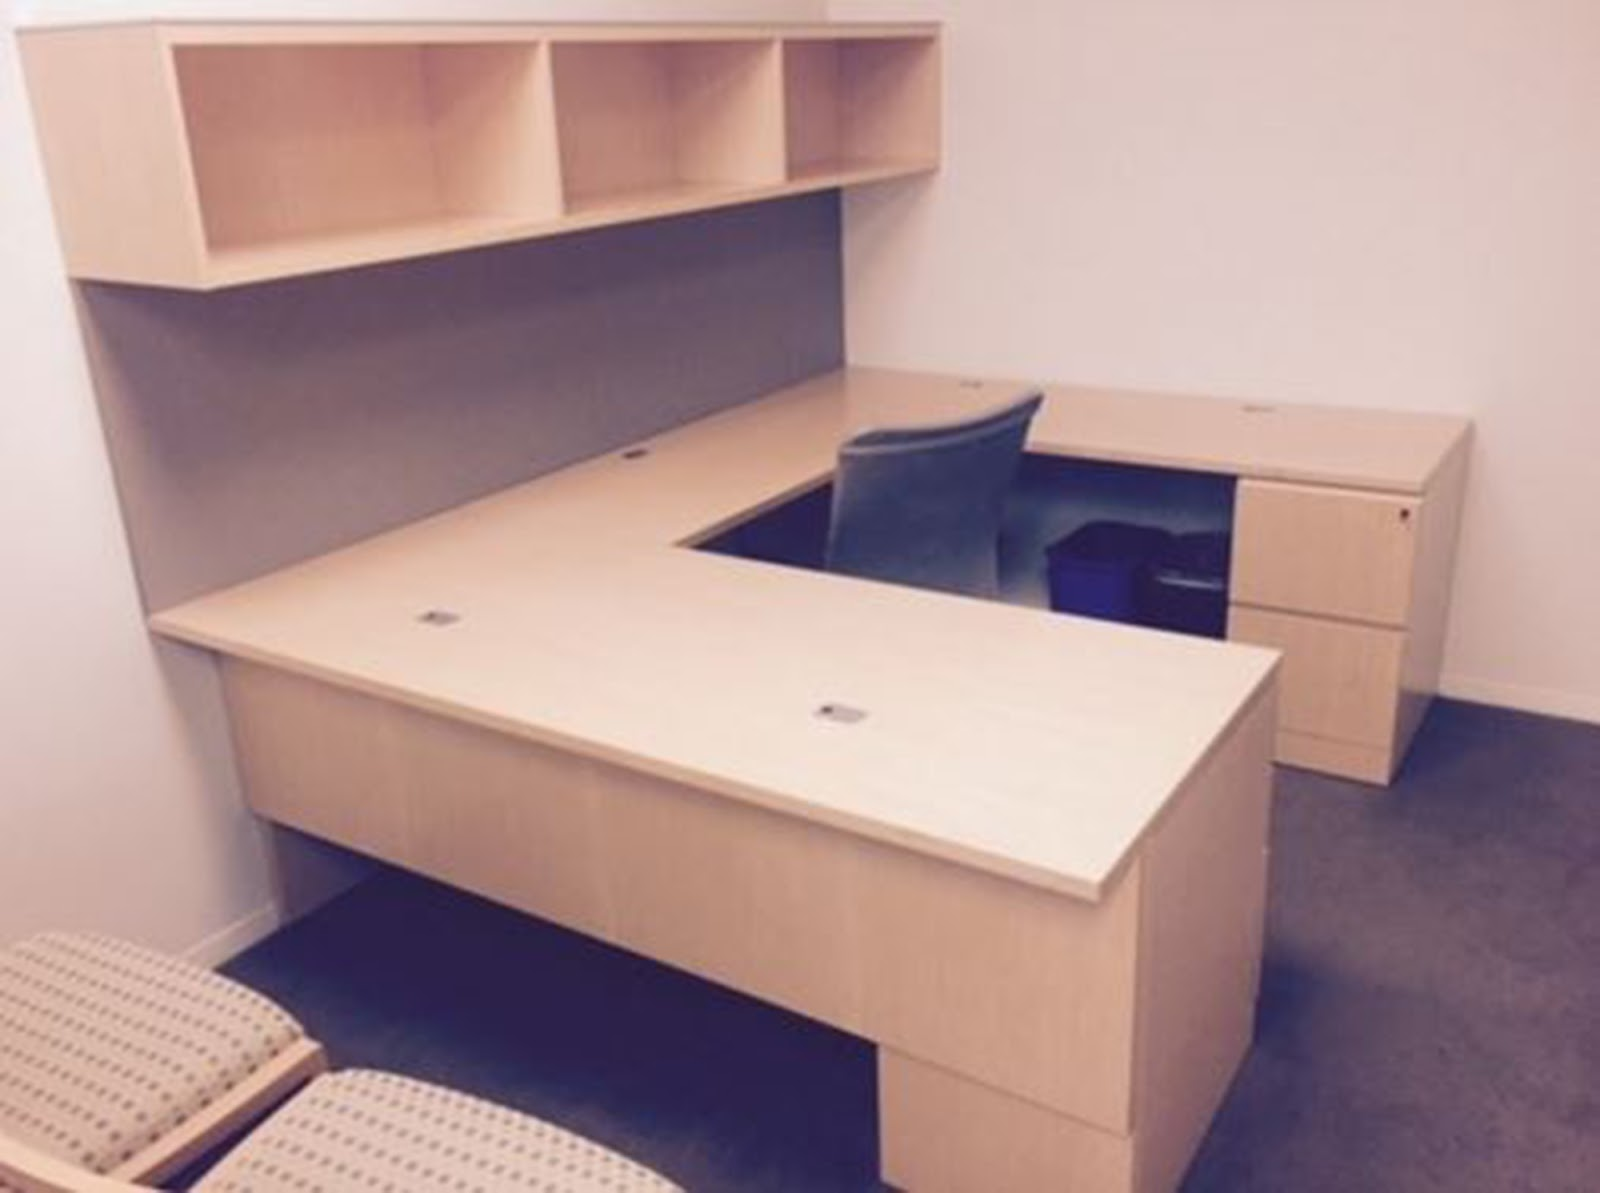 used systems furniture san marcos 619 738 5773 ca office rh used systems furniture san marcos blogspot com